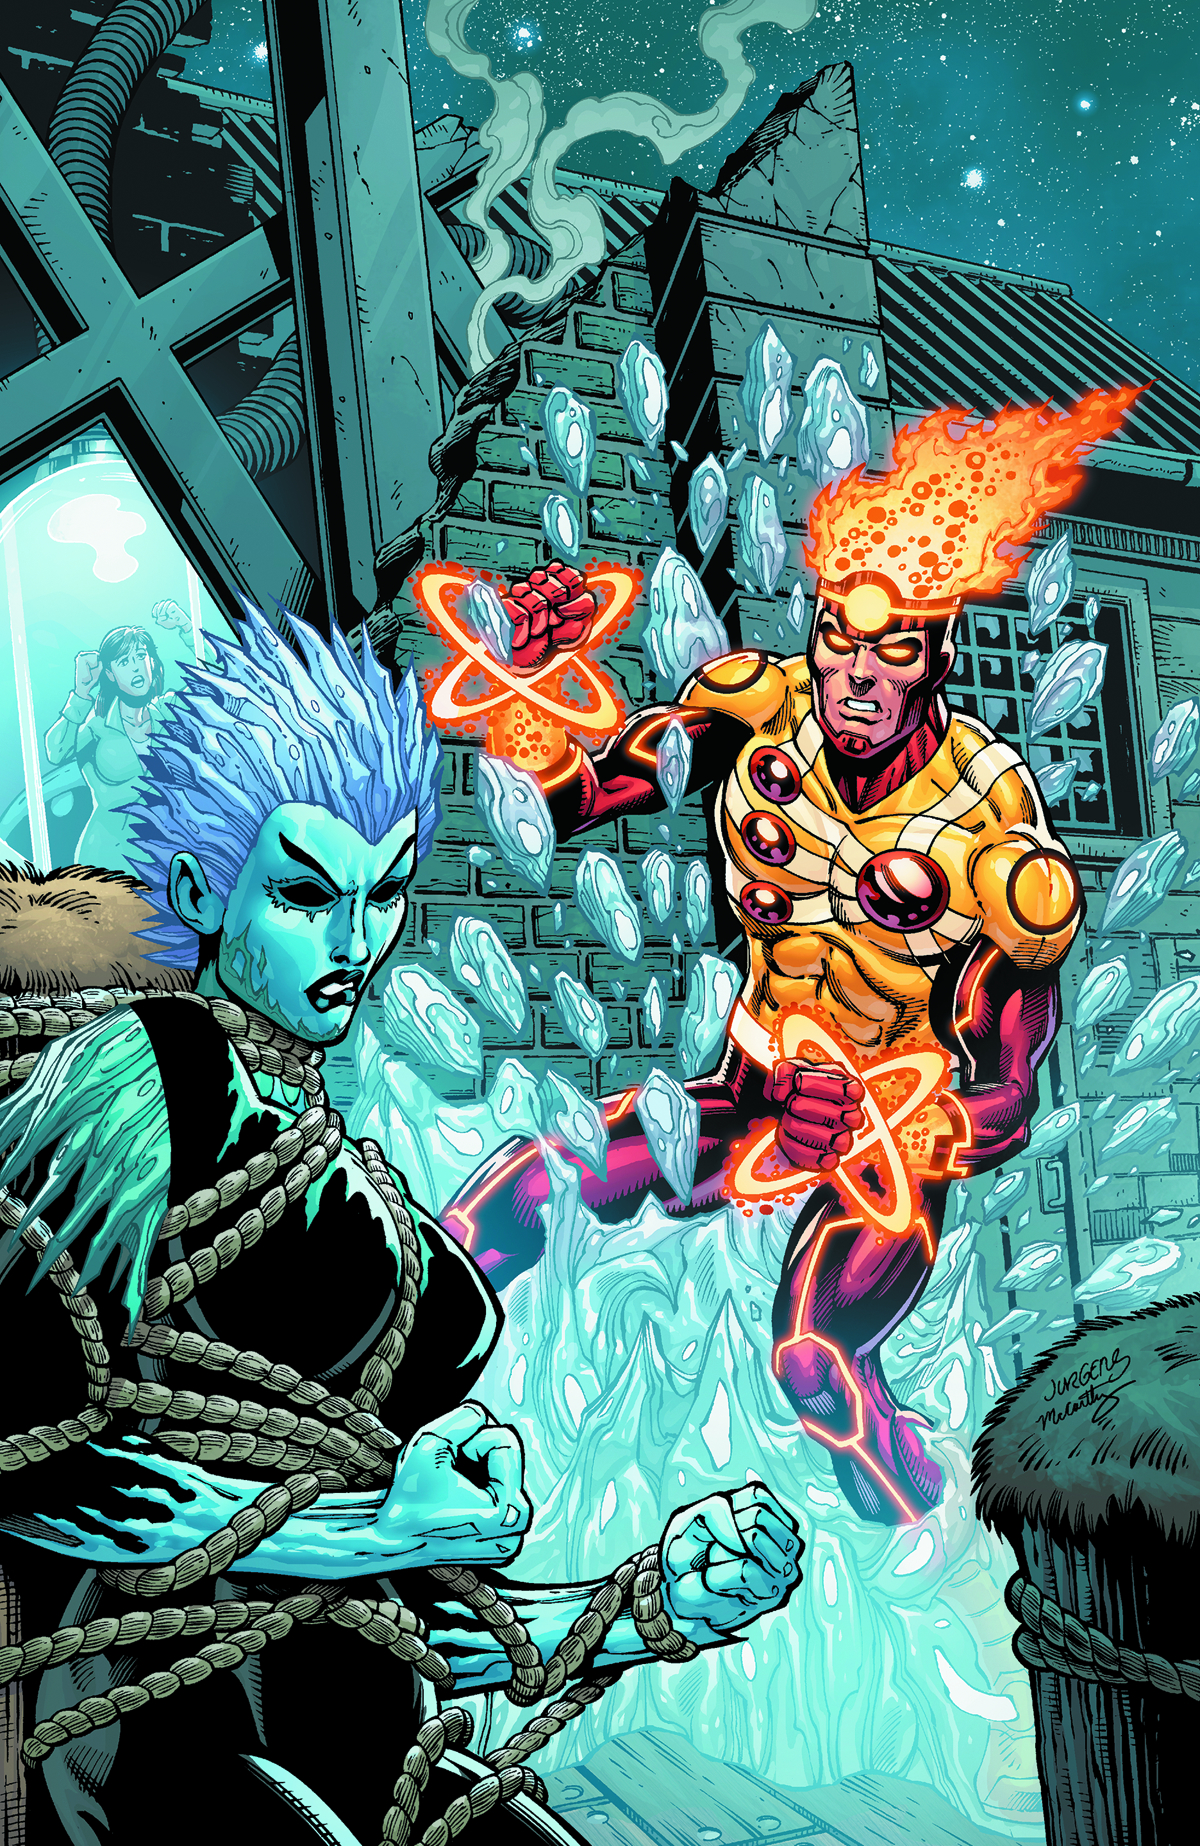 FURY OF FIRESTORM THE NUCLEAR MAN #19